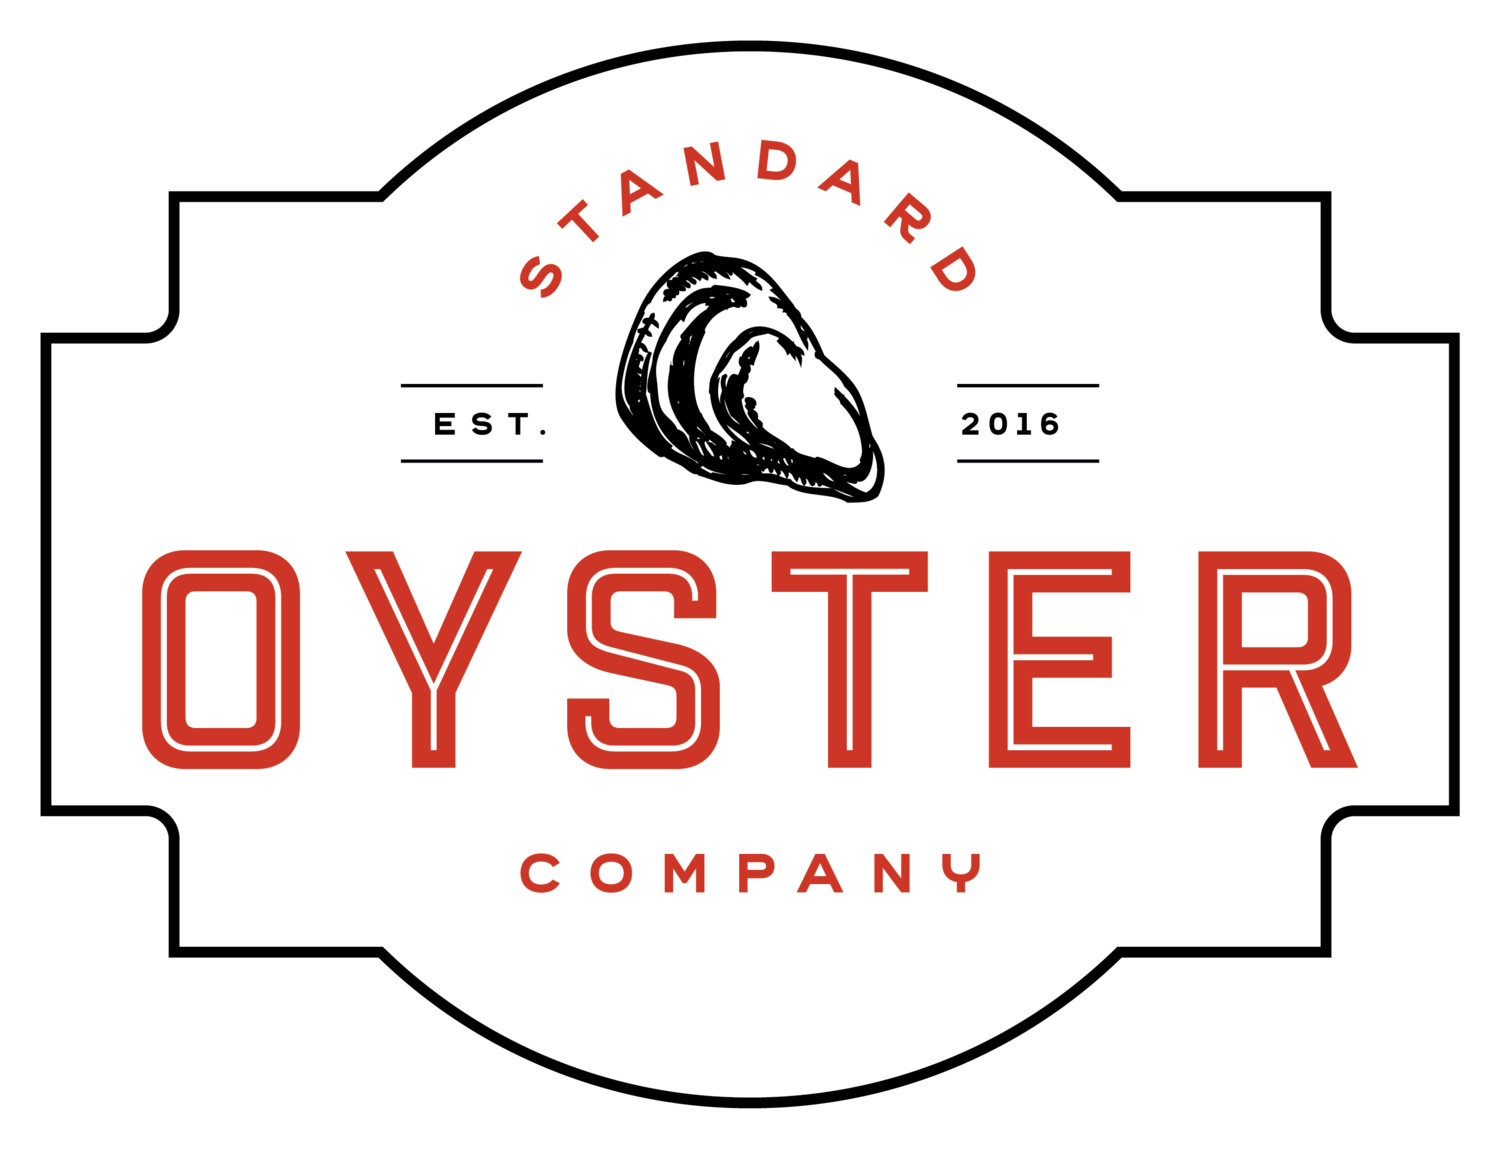 Standard Oyster Company